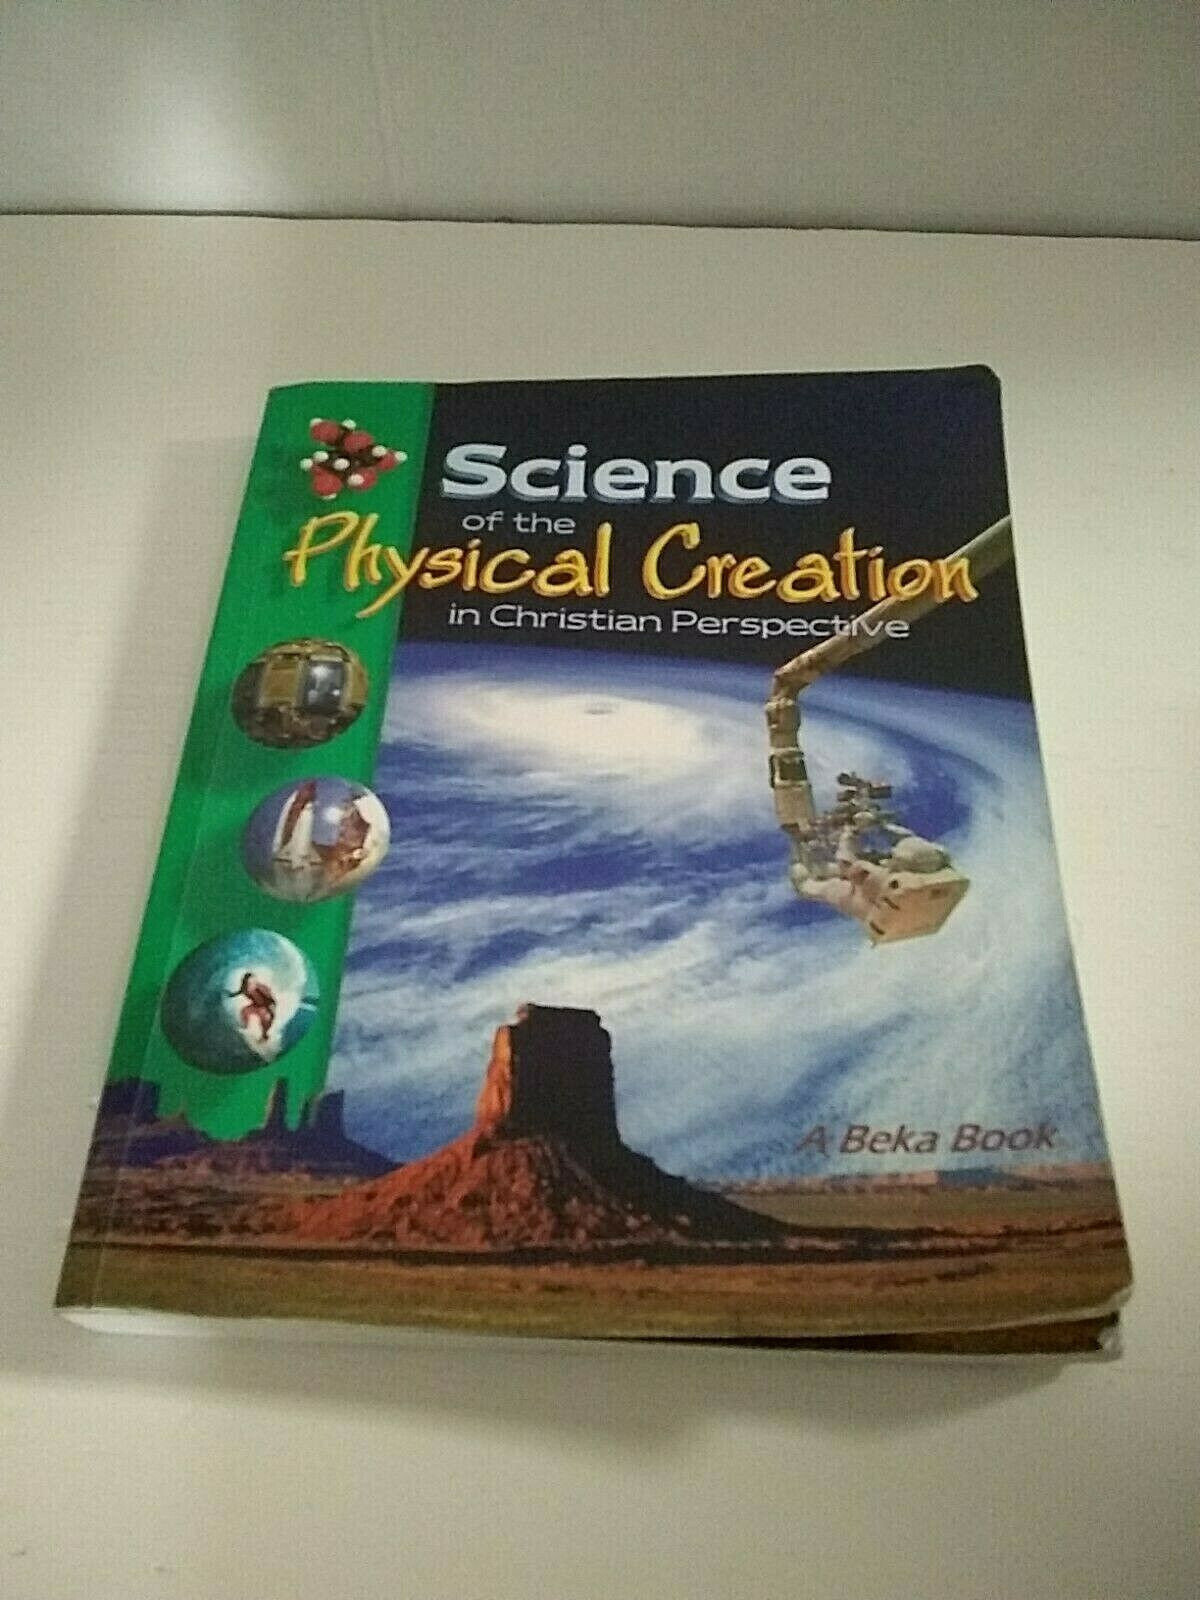 Abeka 6th Grade Science Abeka Science Of the Physical Creation Student Textbook